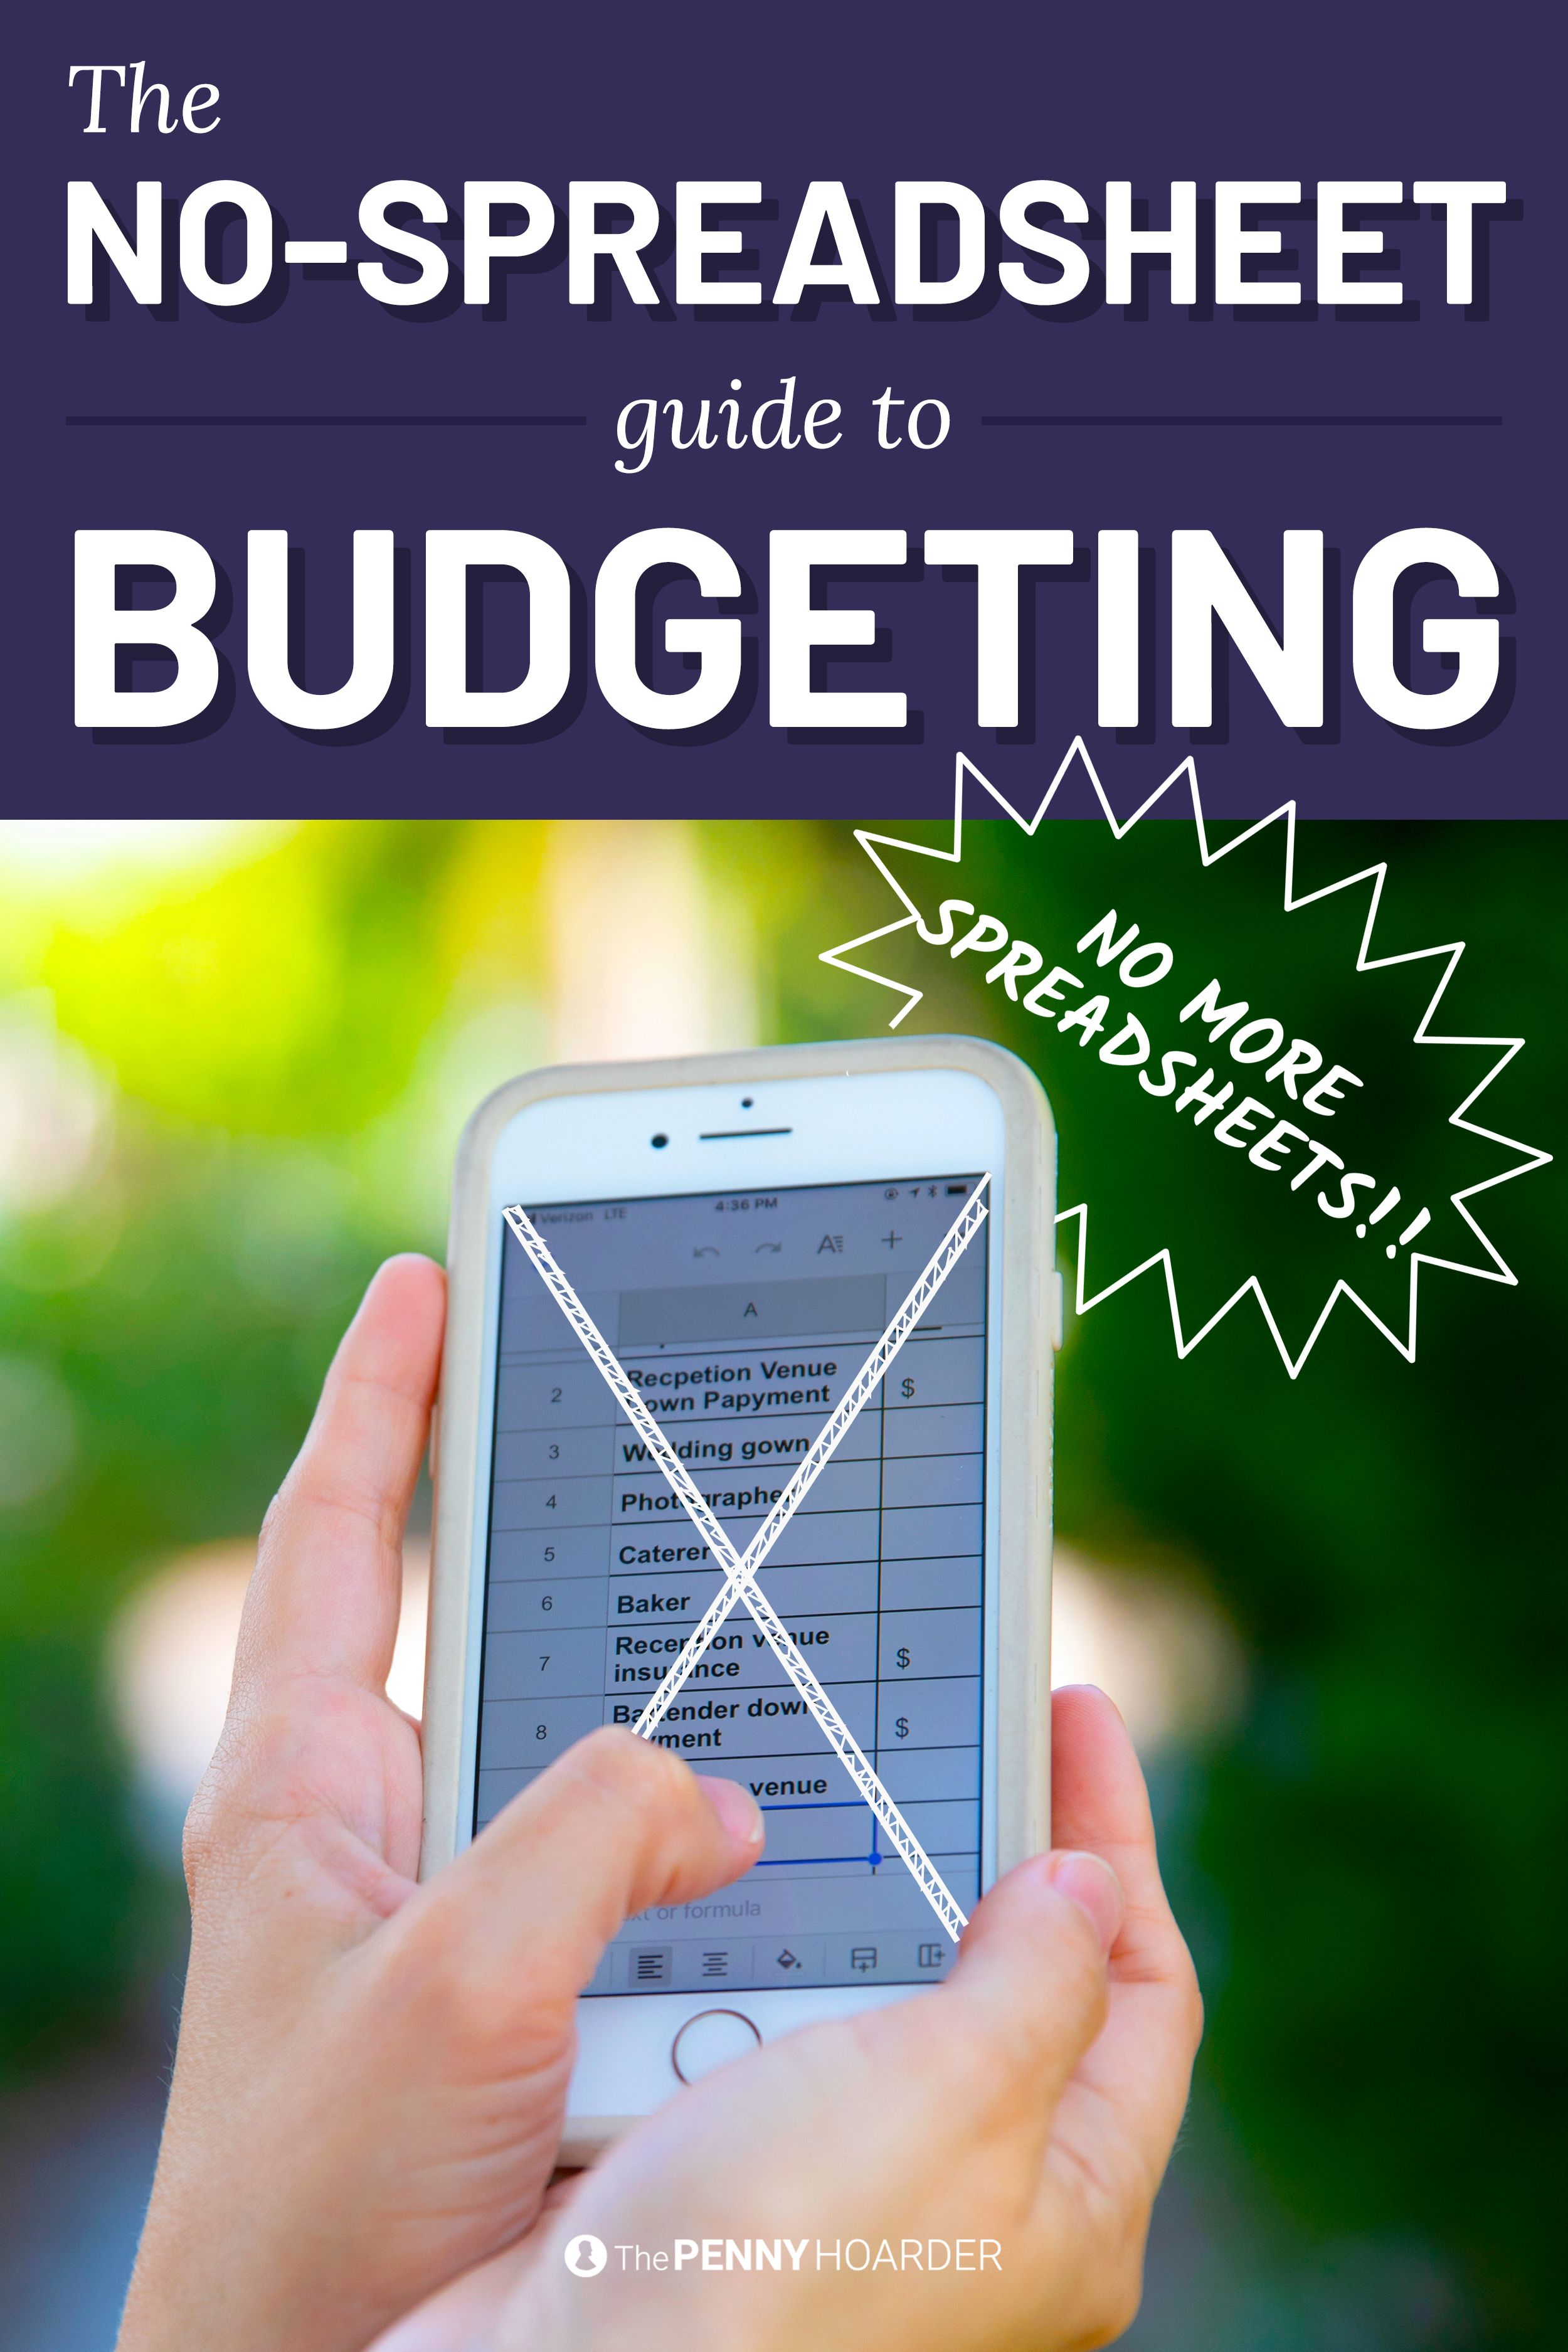 How To Budget If Spreadsheets Make You Want To Gouge Your